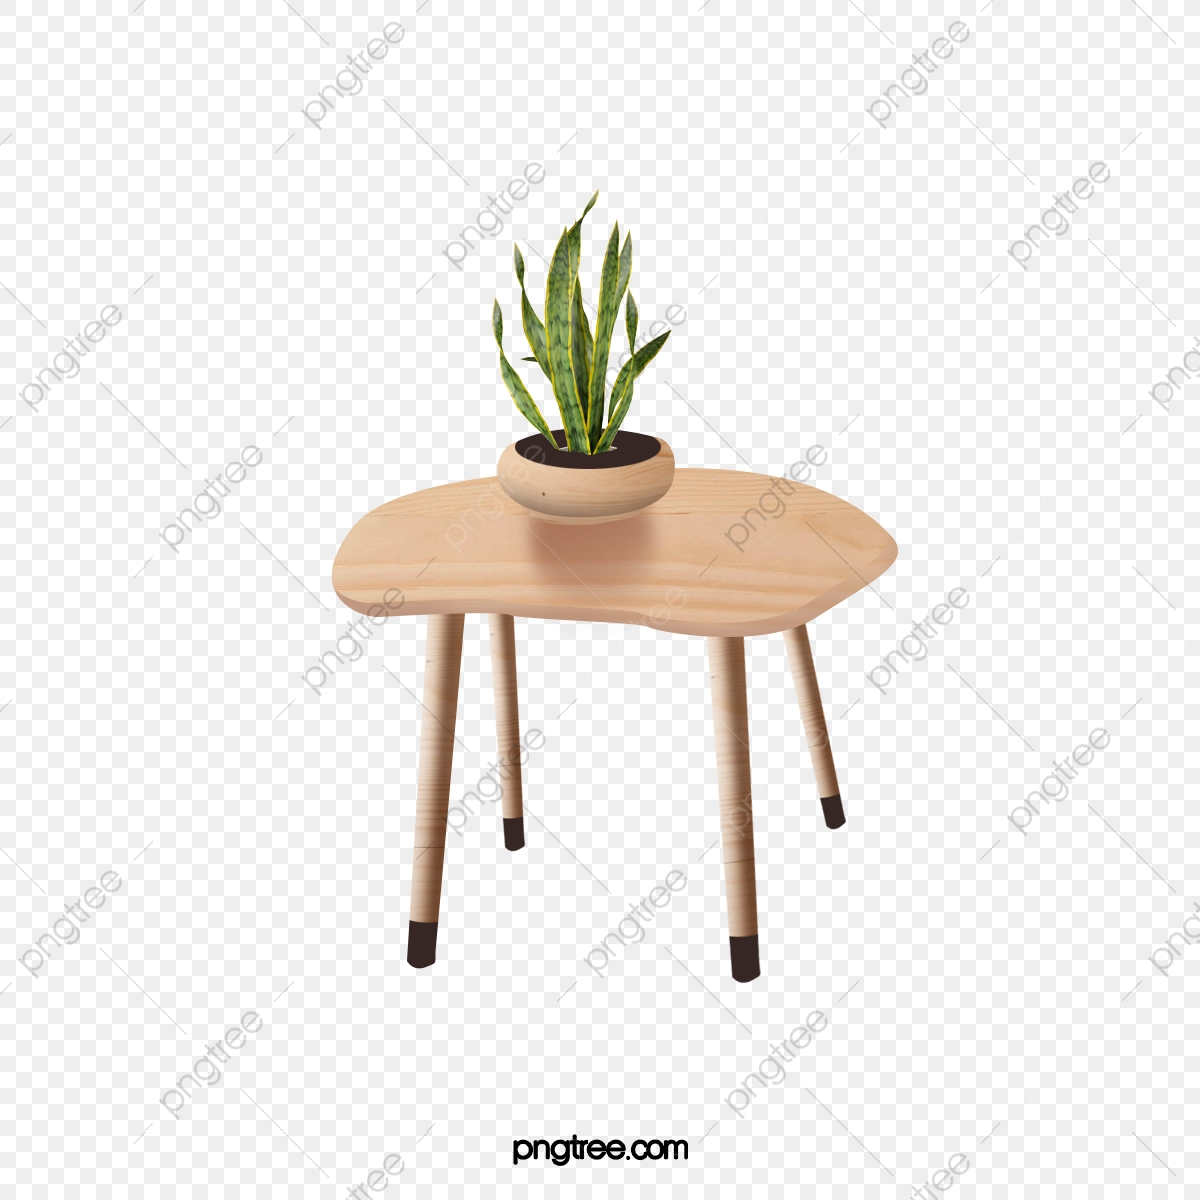 Living Sofa Side A Few Simple Tables Product Kind Creative Side Table Side Table Png Transparent Clipart Image And Psd File For Free Download